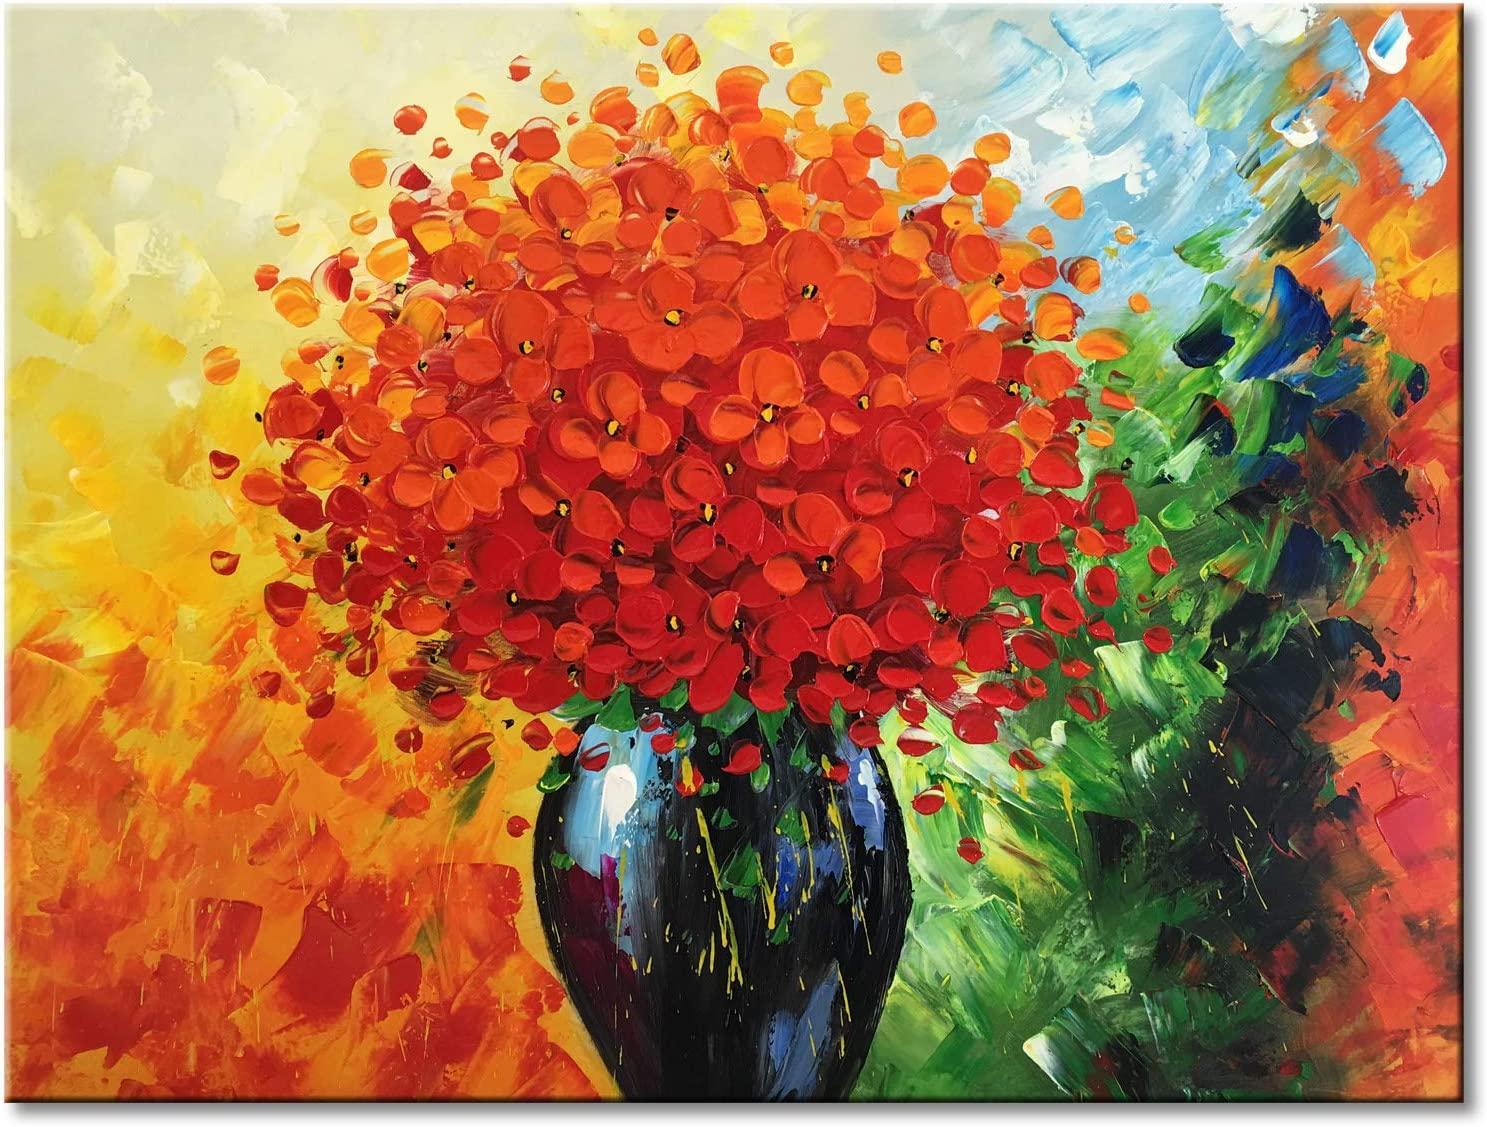 Max 86% OFF High order Handmade Modern Textured Red Flower Oil Abstract Painting Floral